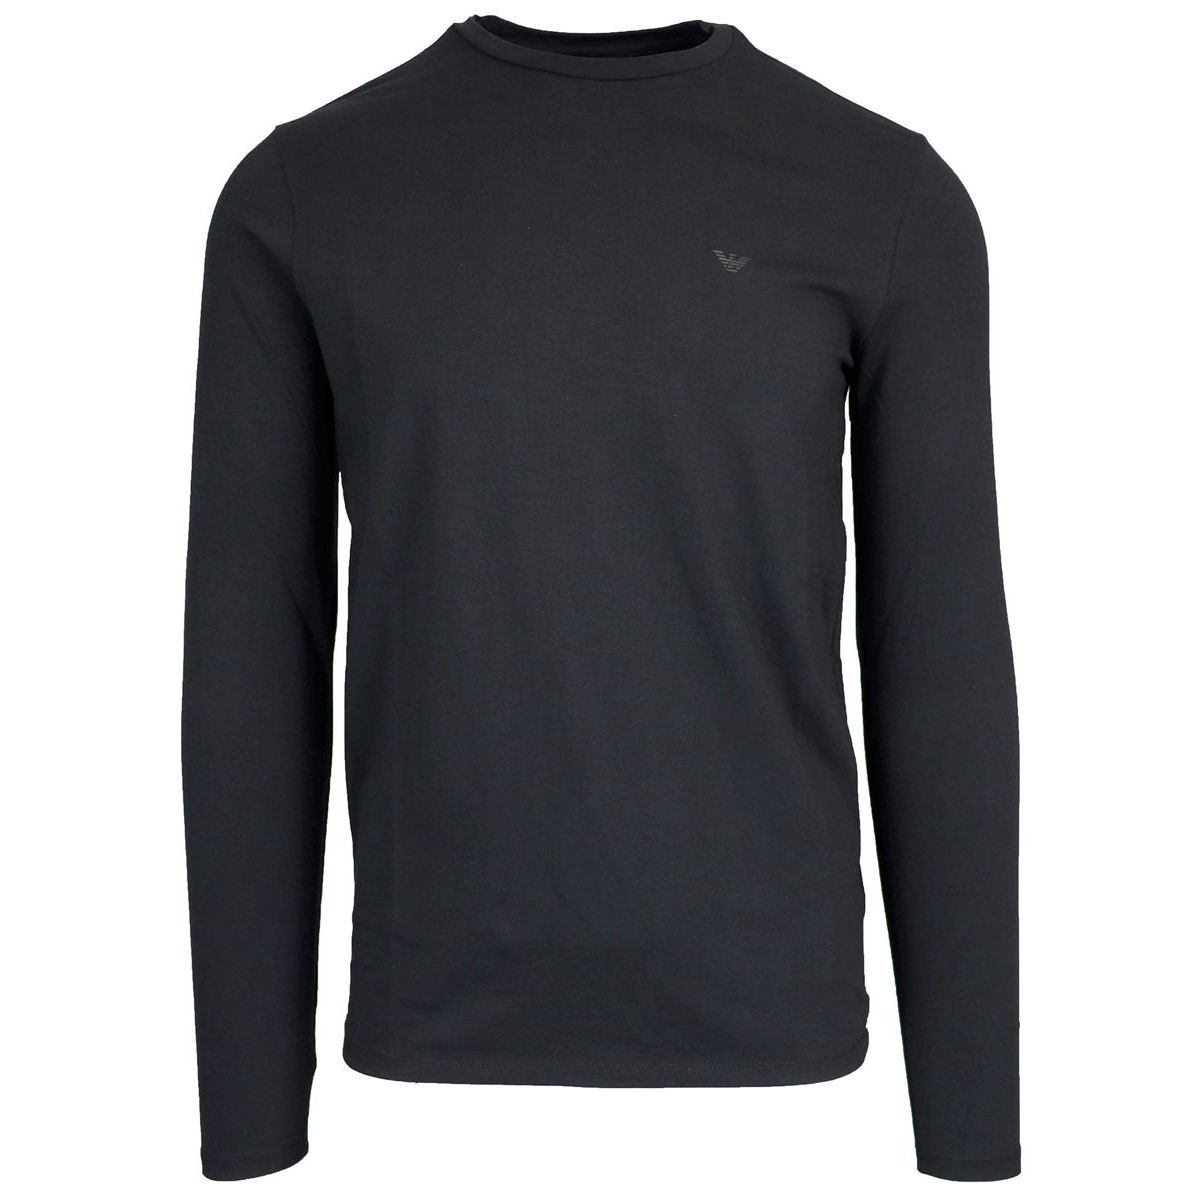 T-shirt with long sleeves in stretch cotton Black Emporio Armani